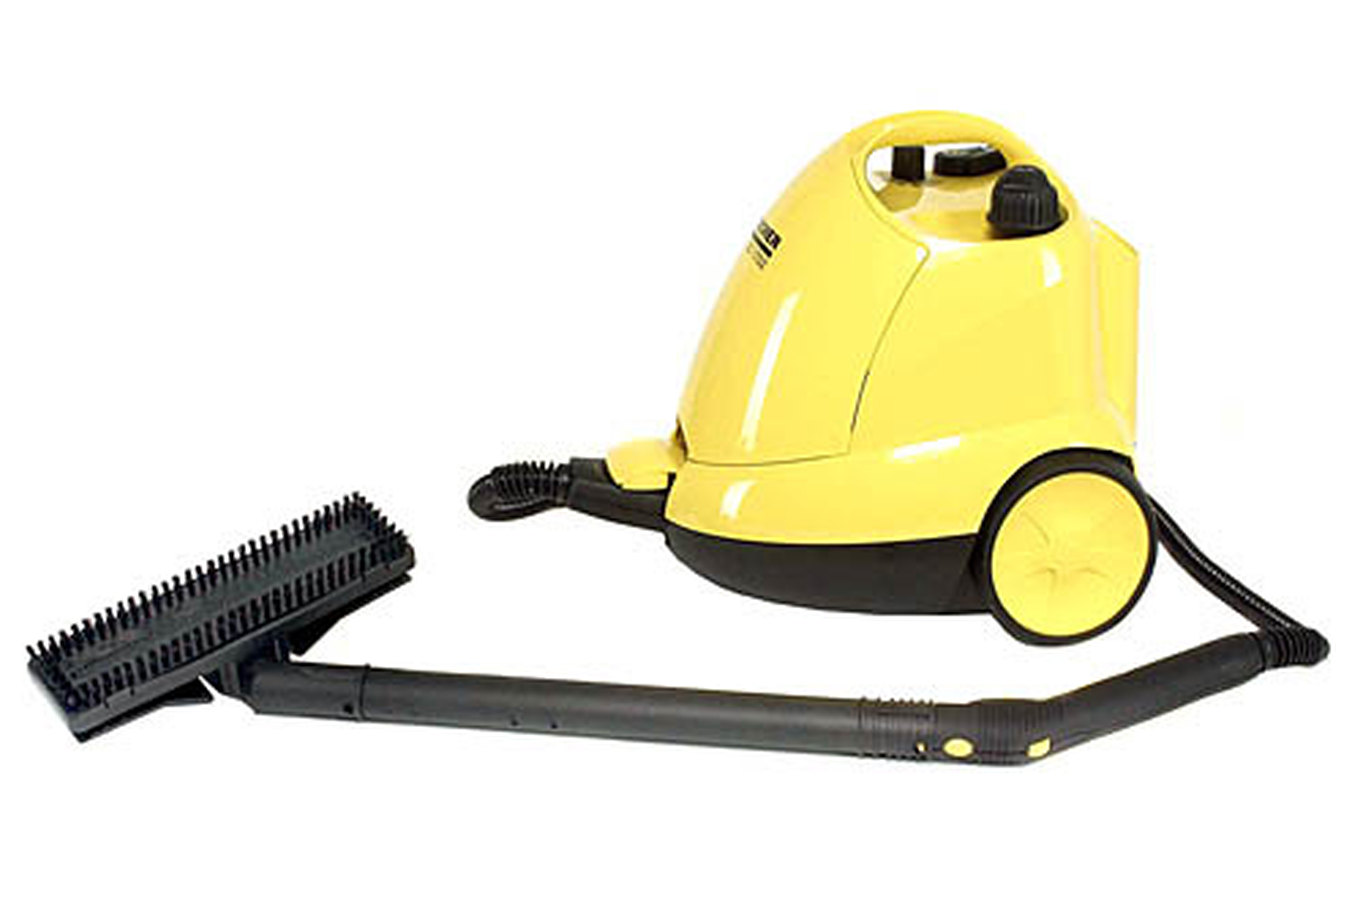 meilleur brosse aspirateur karcher pas cher. Black Bedroom Furniture Sets. Home Design Ideas